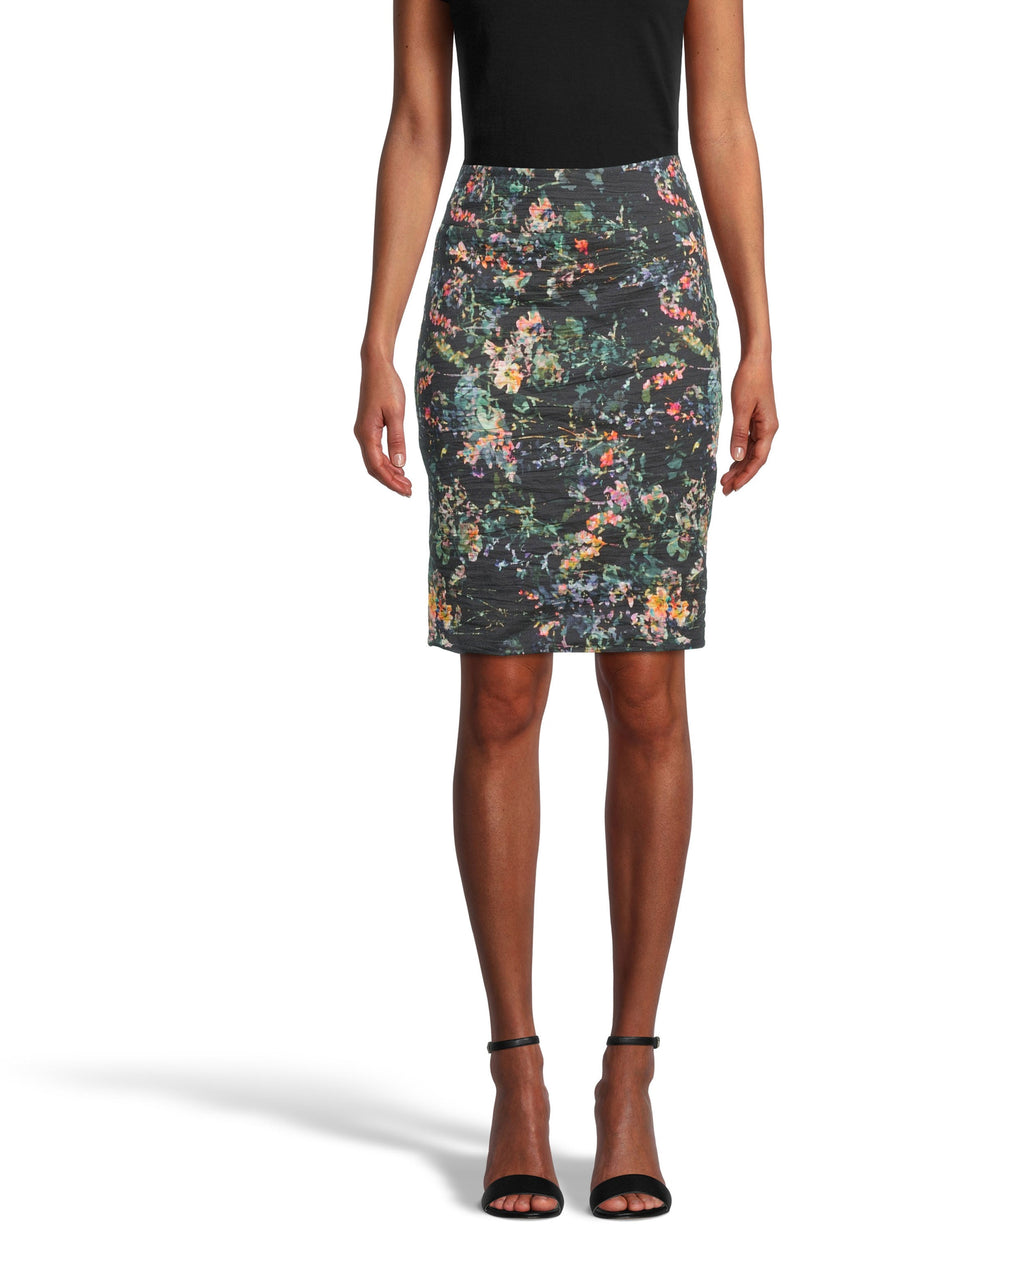 CS18570 - MOONLIT GARDEN NINA SKIRT - bottoms - skirts - Our Nina skirt is one of our best selling styles for its simplicity yet chicness. Designed in a classic pencil skirt silhouette, this mini skirt is updated for our holiday collection in our new moonlit garden print. The cotton metal fabrication hugs your curves and has a slight shine to it for an even more flattering effect. Add 1 line break Stylist tip: Pair with knee high black boots.